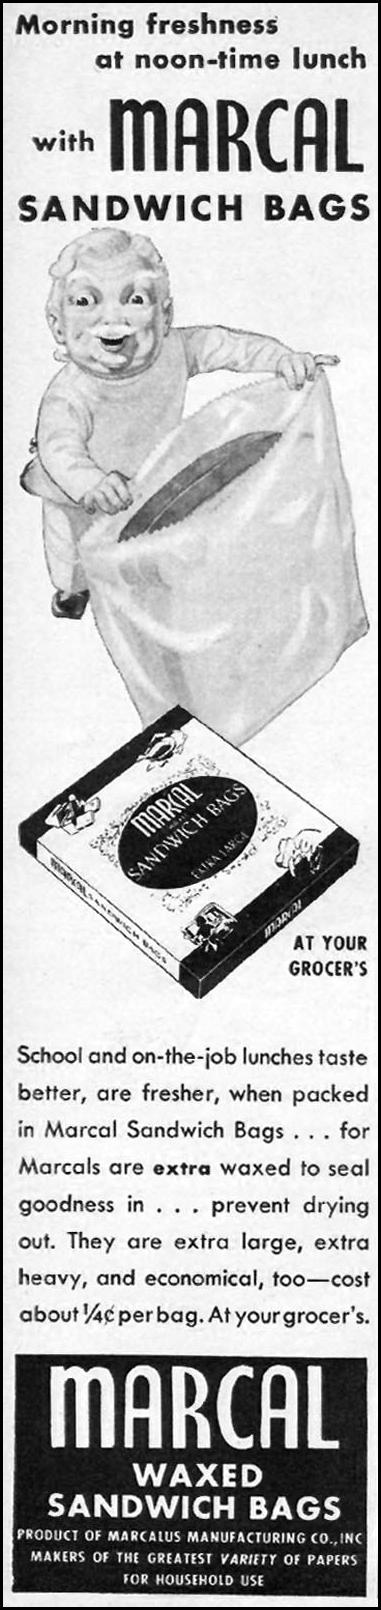 MARCAL WAXED SANDWICH BAGS WOMAN'S DAY 01/01/1947 p. 60